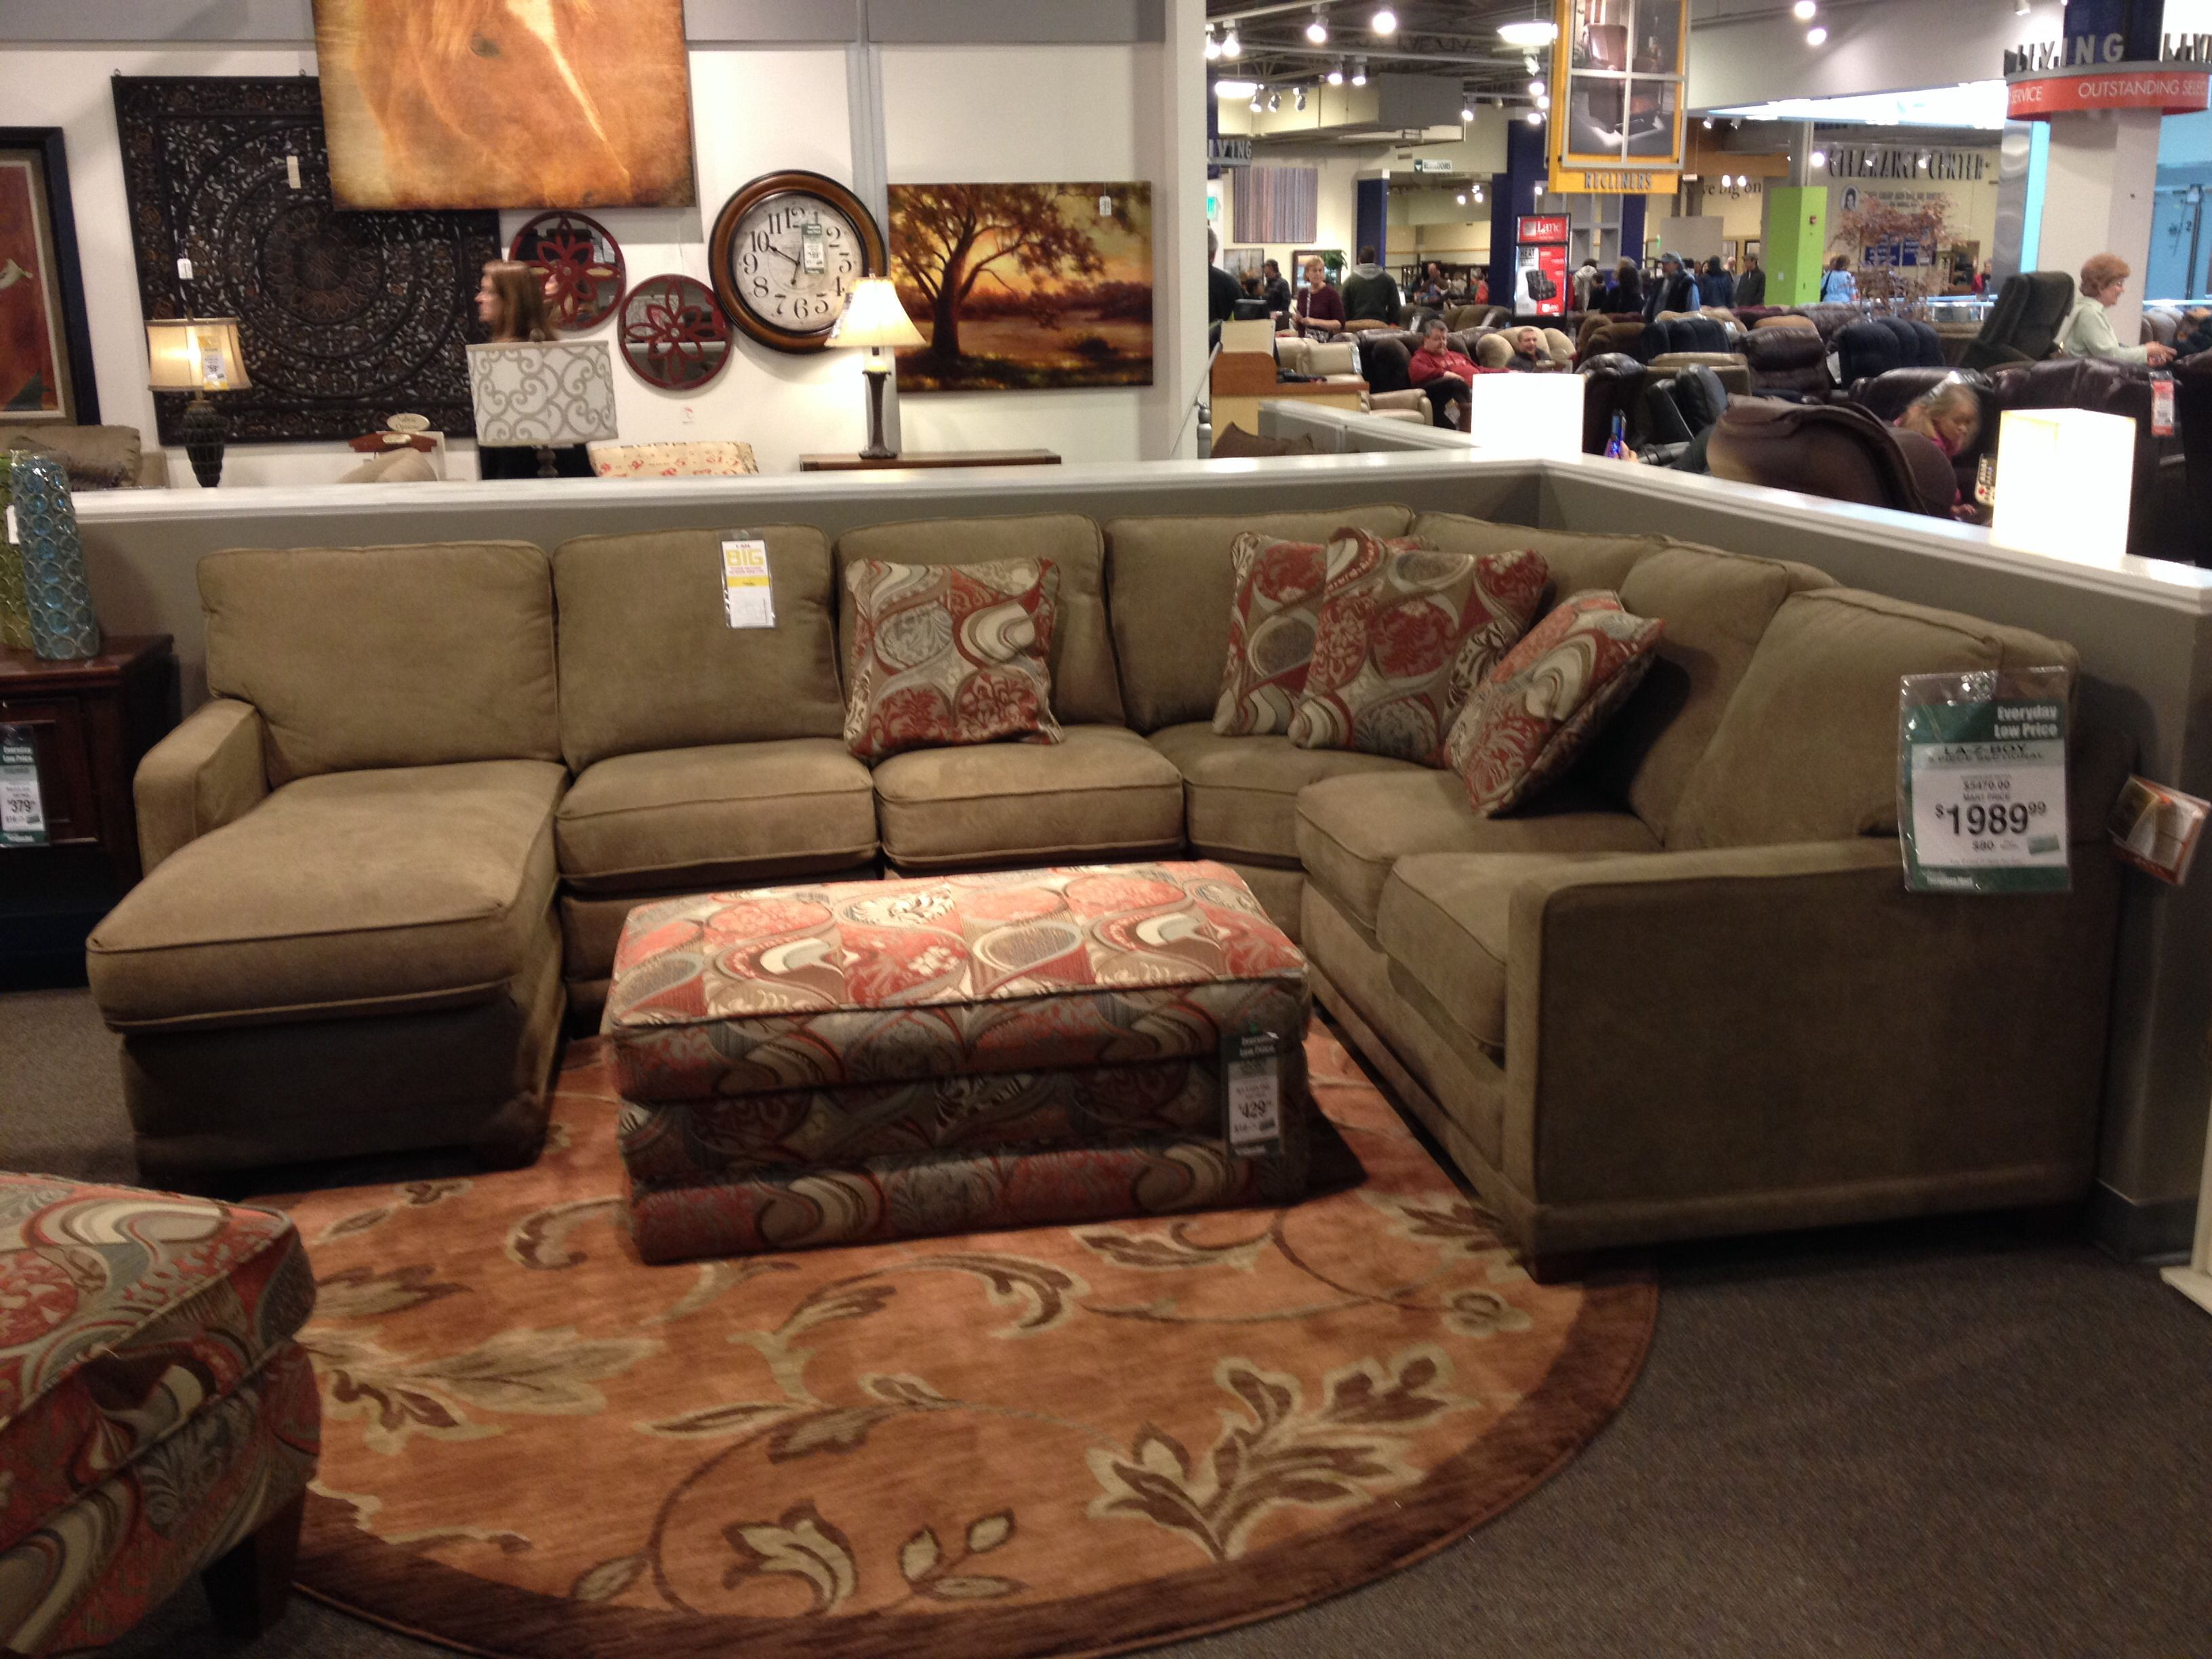 Lazy Boy sectional for basement : lazyboy sectionals - Sectionals, Sofas & Couches